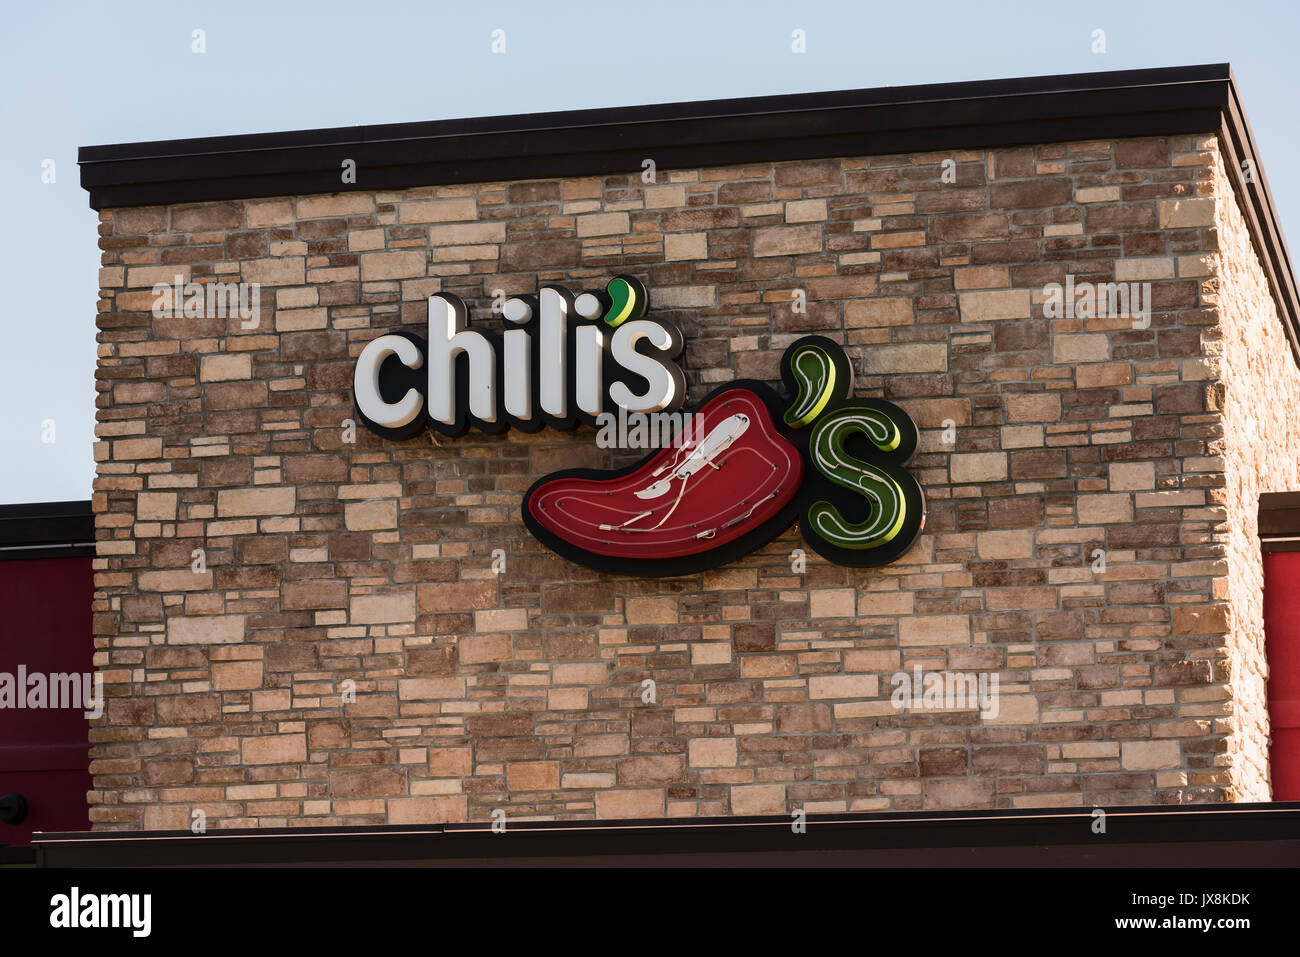 Chilis Restaurant Usa Stock Photos & Chilis Restaurant Usa Stock ...